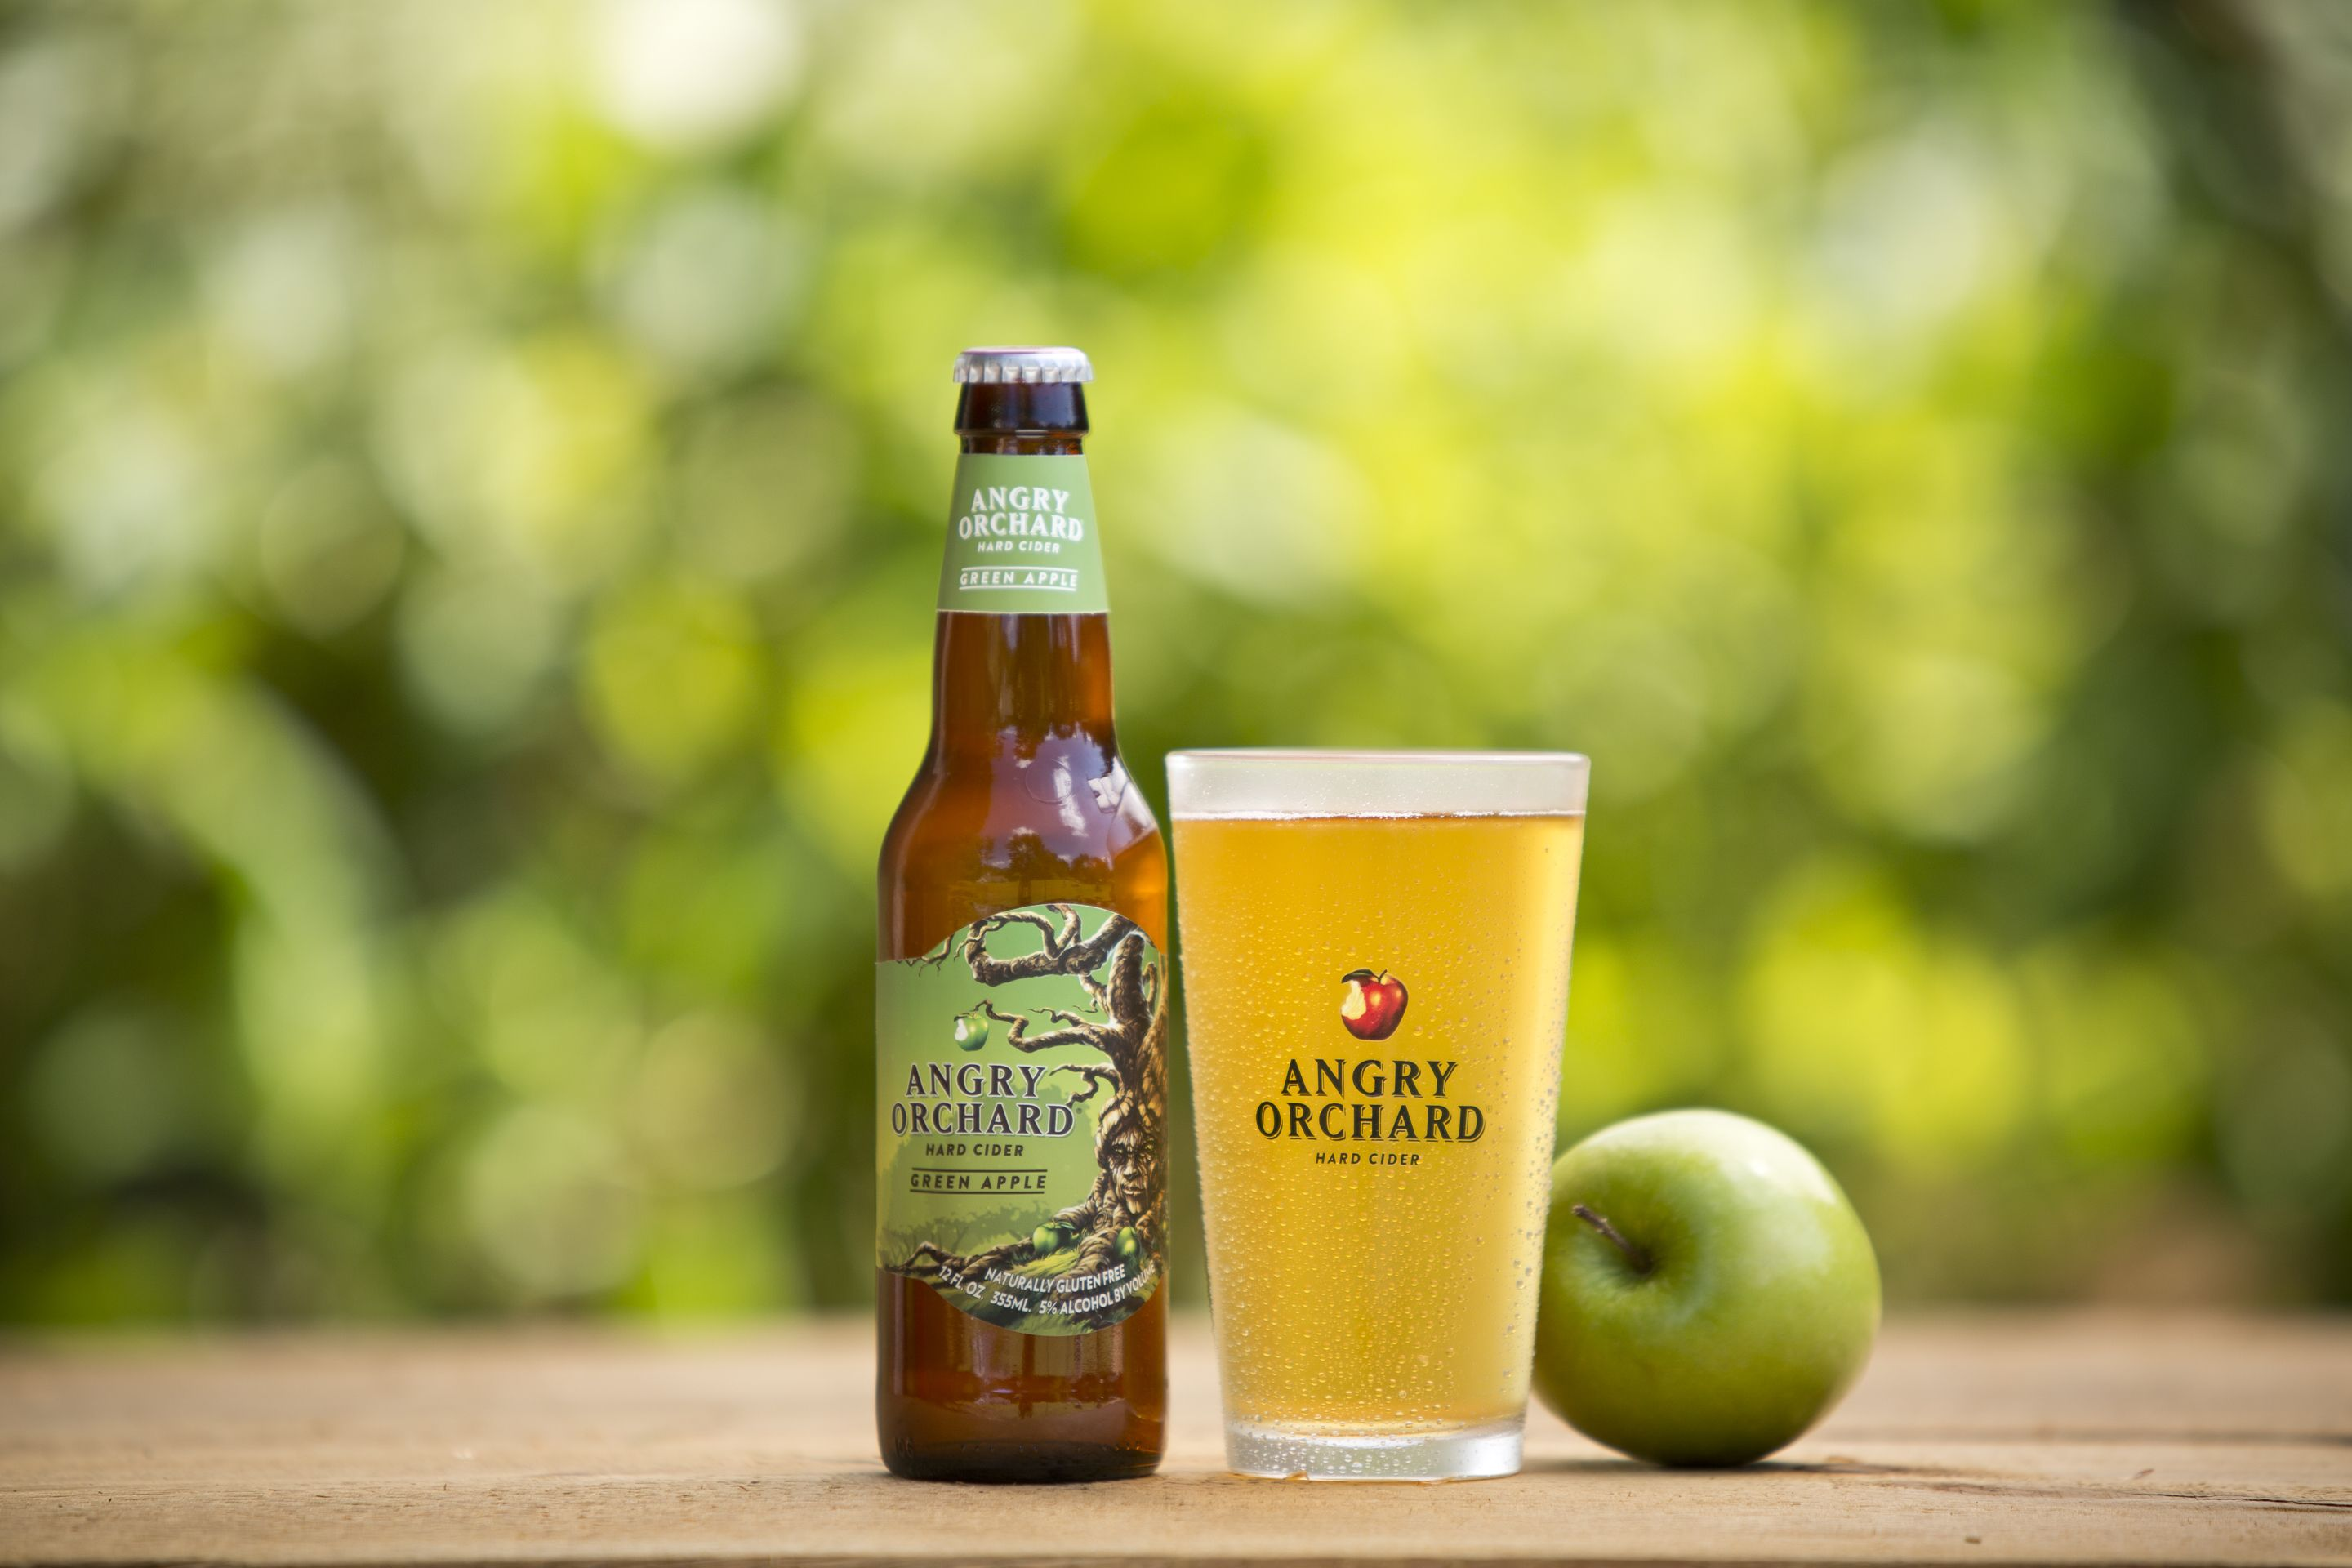 Have you had a chance to try Green Apple yet?